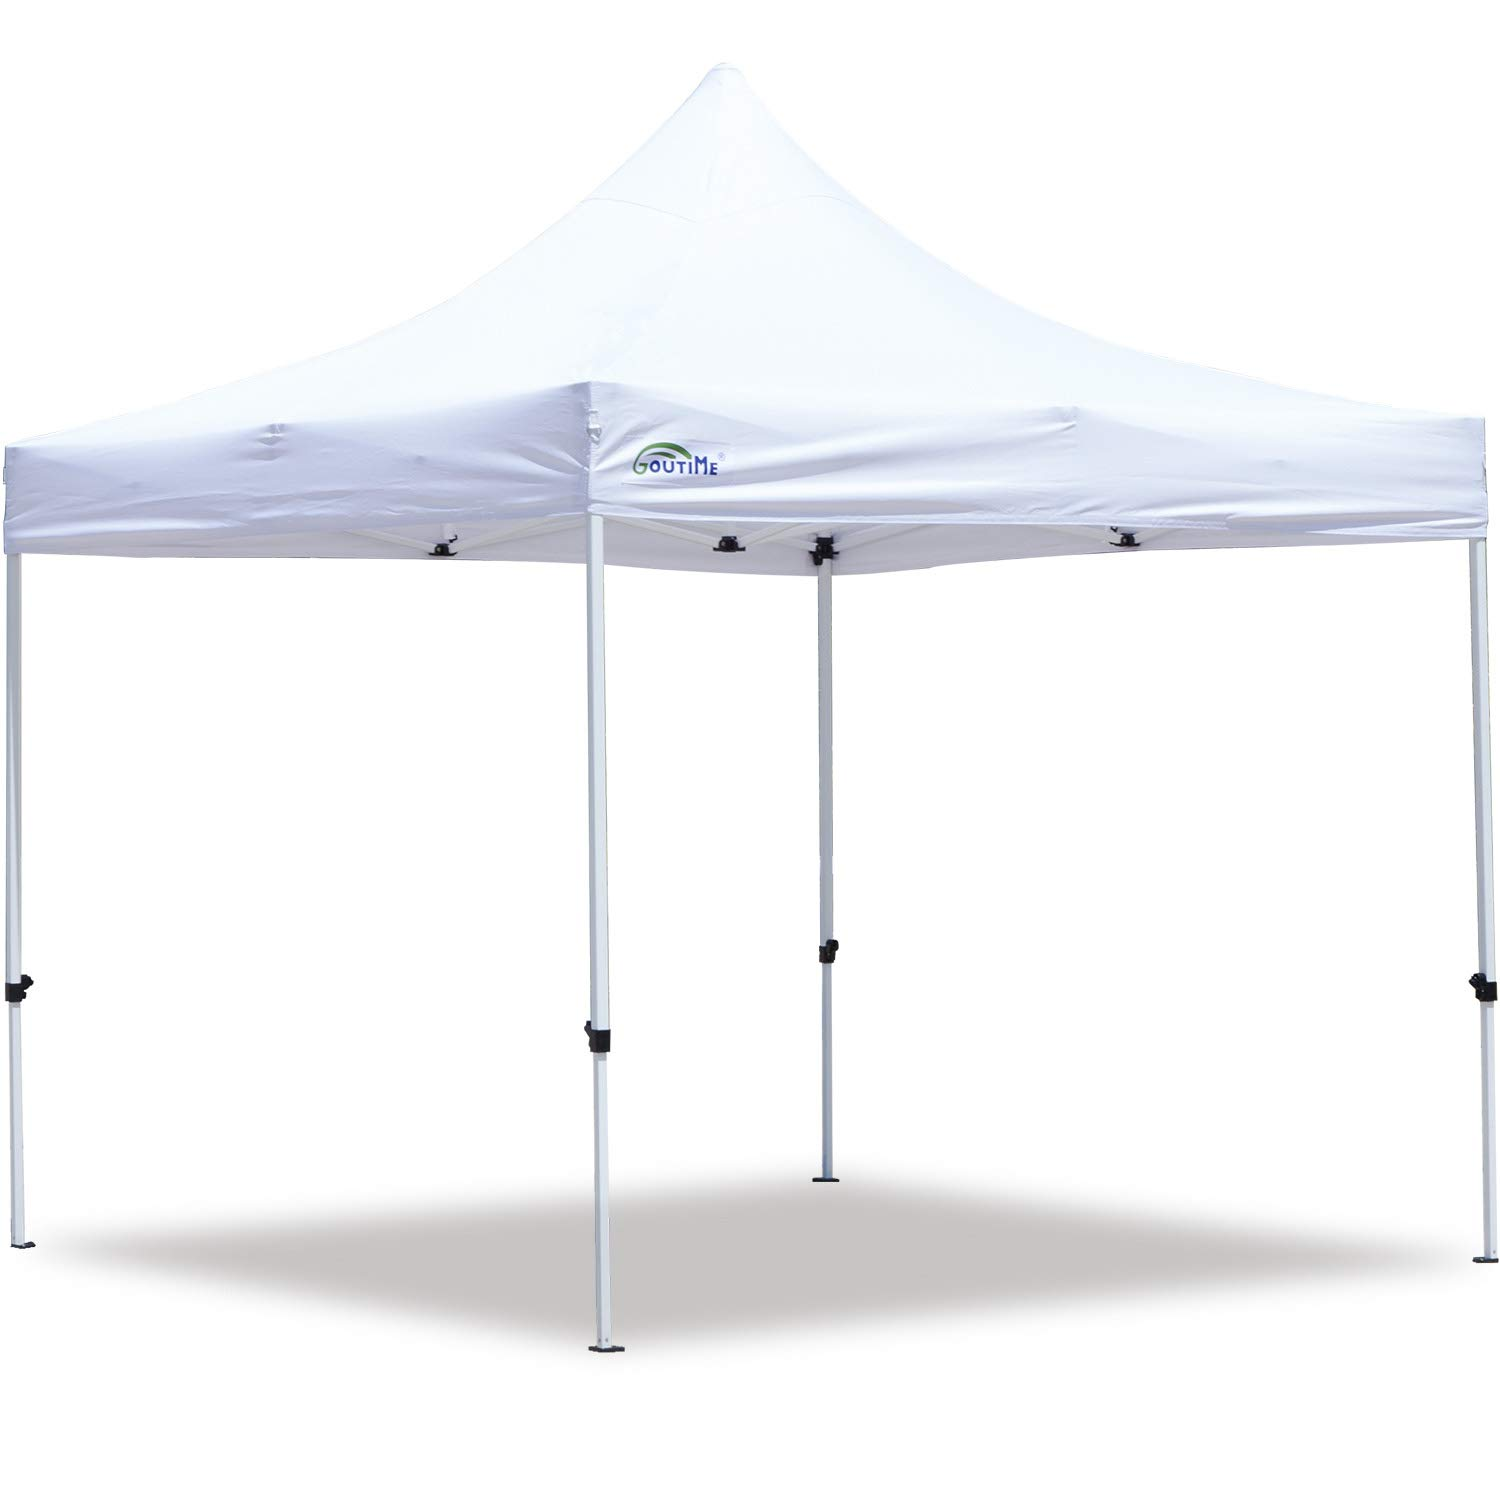 Goutime 10×10 Commercial Grade Pop Up Canopy Tents for Parties Trades Shows, Waterproof Ez Up Canopy with Wheeled Bag, White